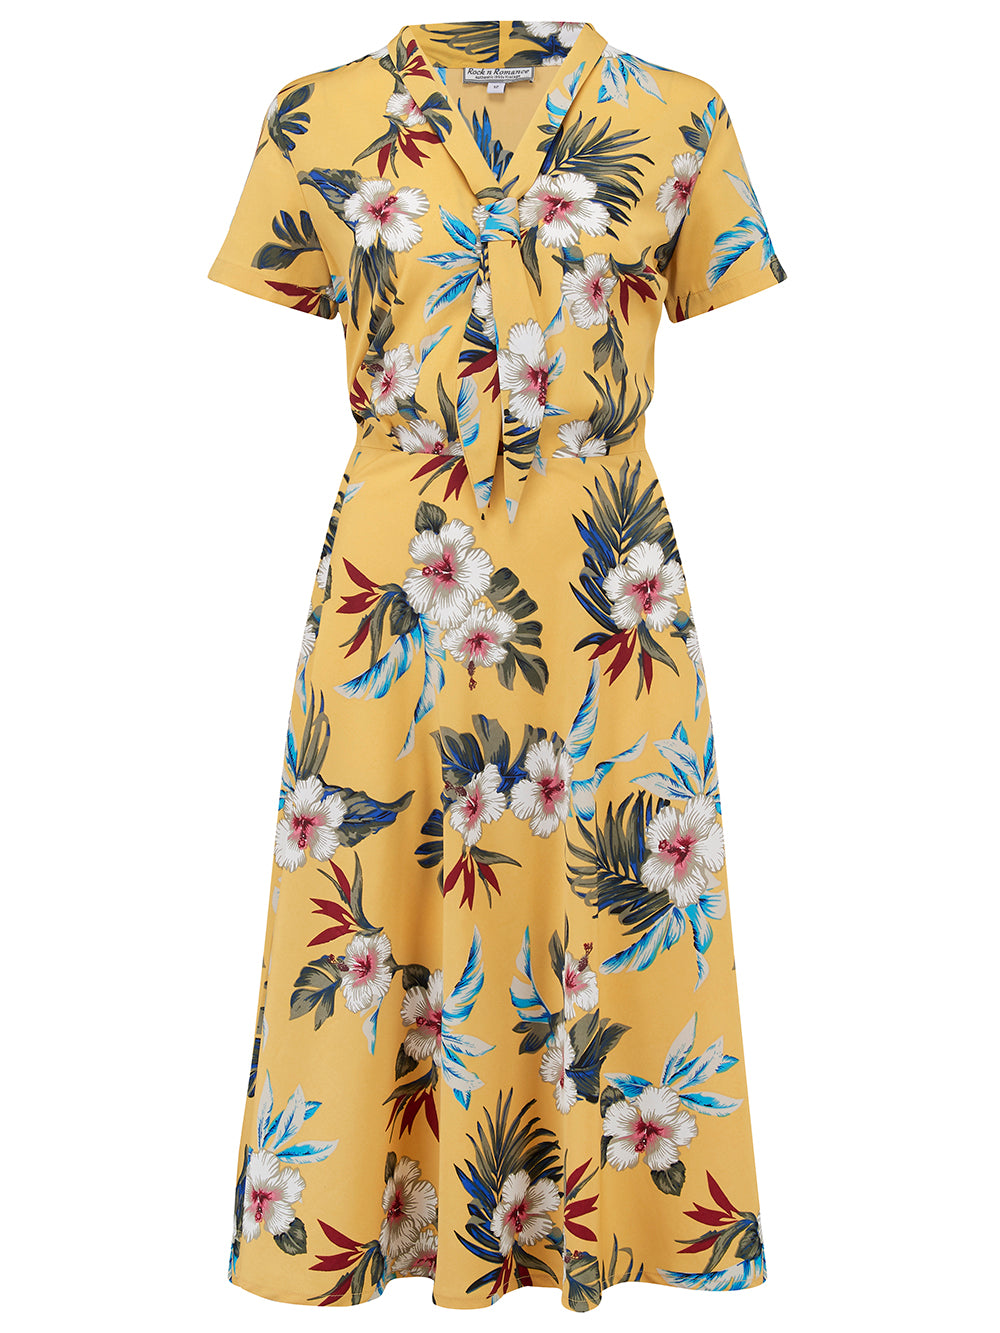 """Jean"" Tea Dress in Mustard Hawaiian Print, Authentic 1950s Vintage Pin Up & Rockabilly Style"